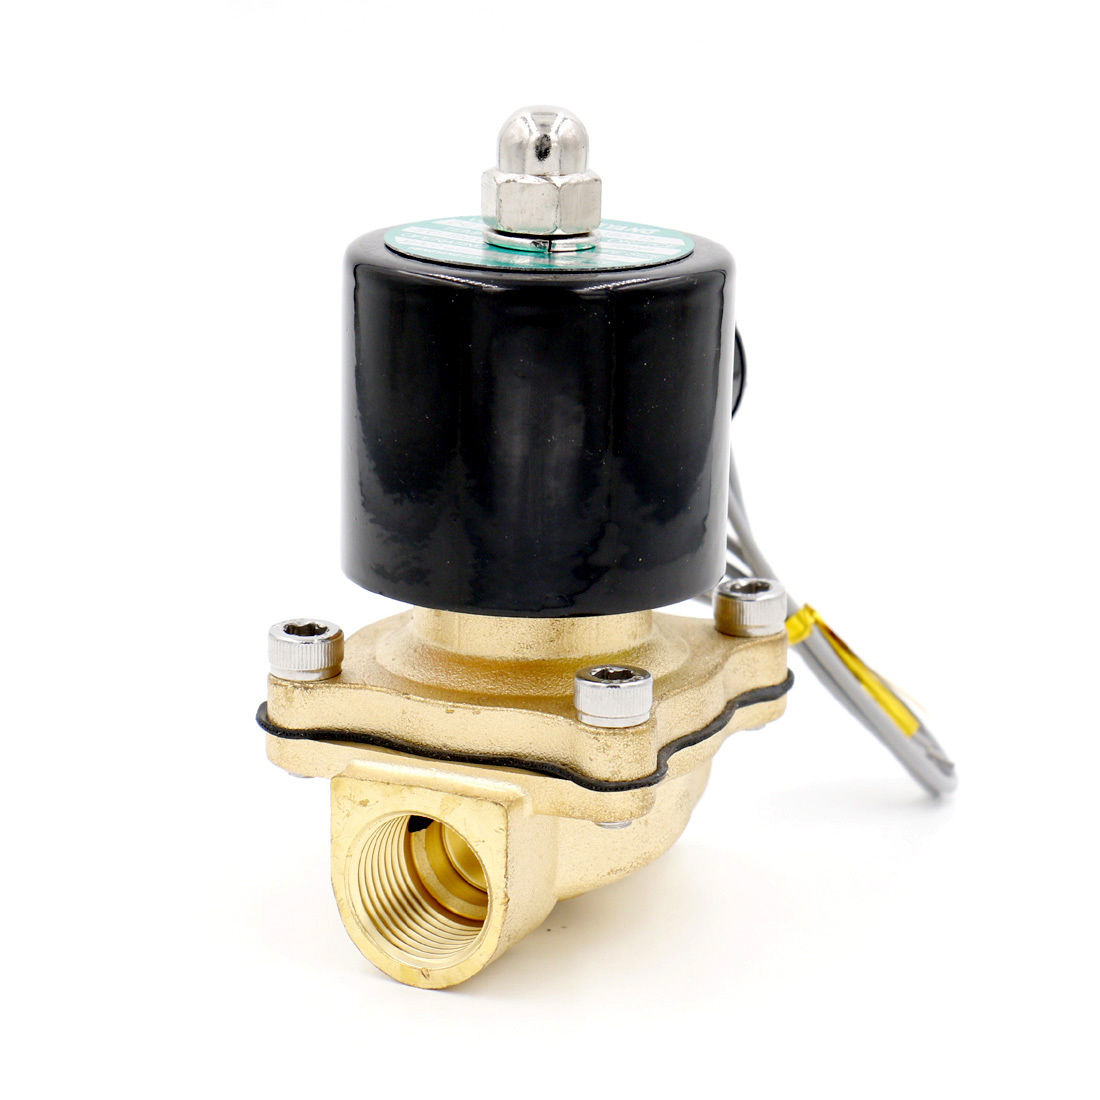 Brass Electric Solenoid Valve 2W-160-15 1/2 Inch NPT for Air Water Valve 110V NC time electric valve ac110v 230 3 4 bsp npt for garden irrigation drain water air pump water automatic control systems